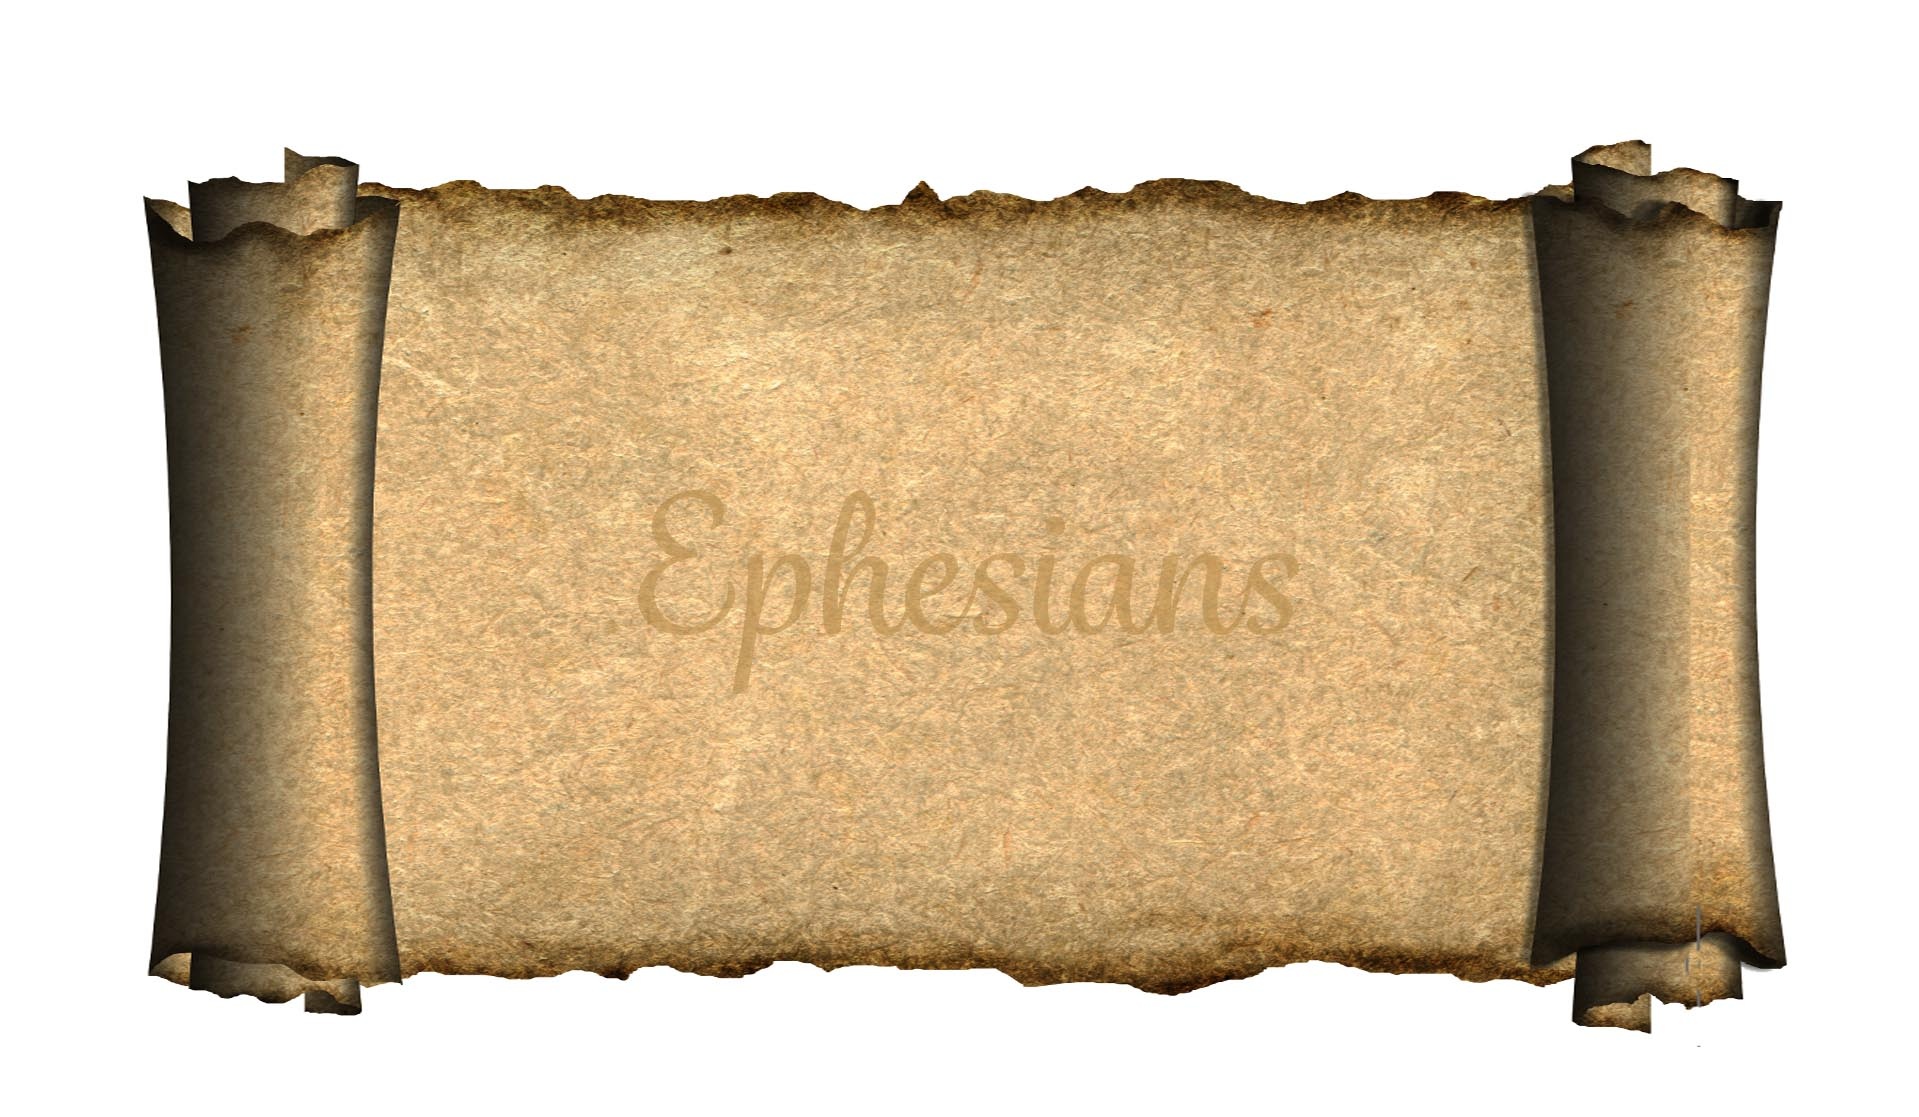 Ephesians - Introduction